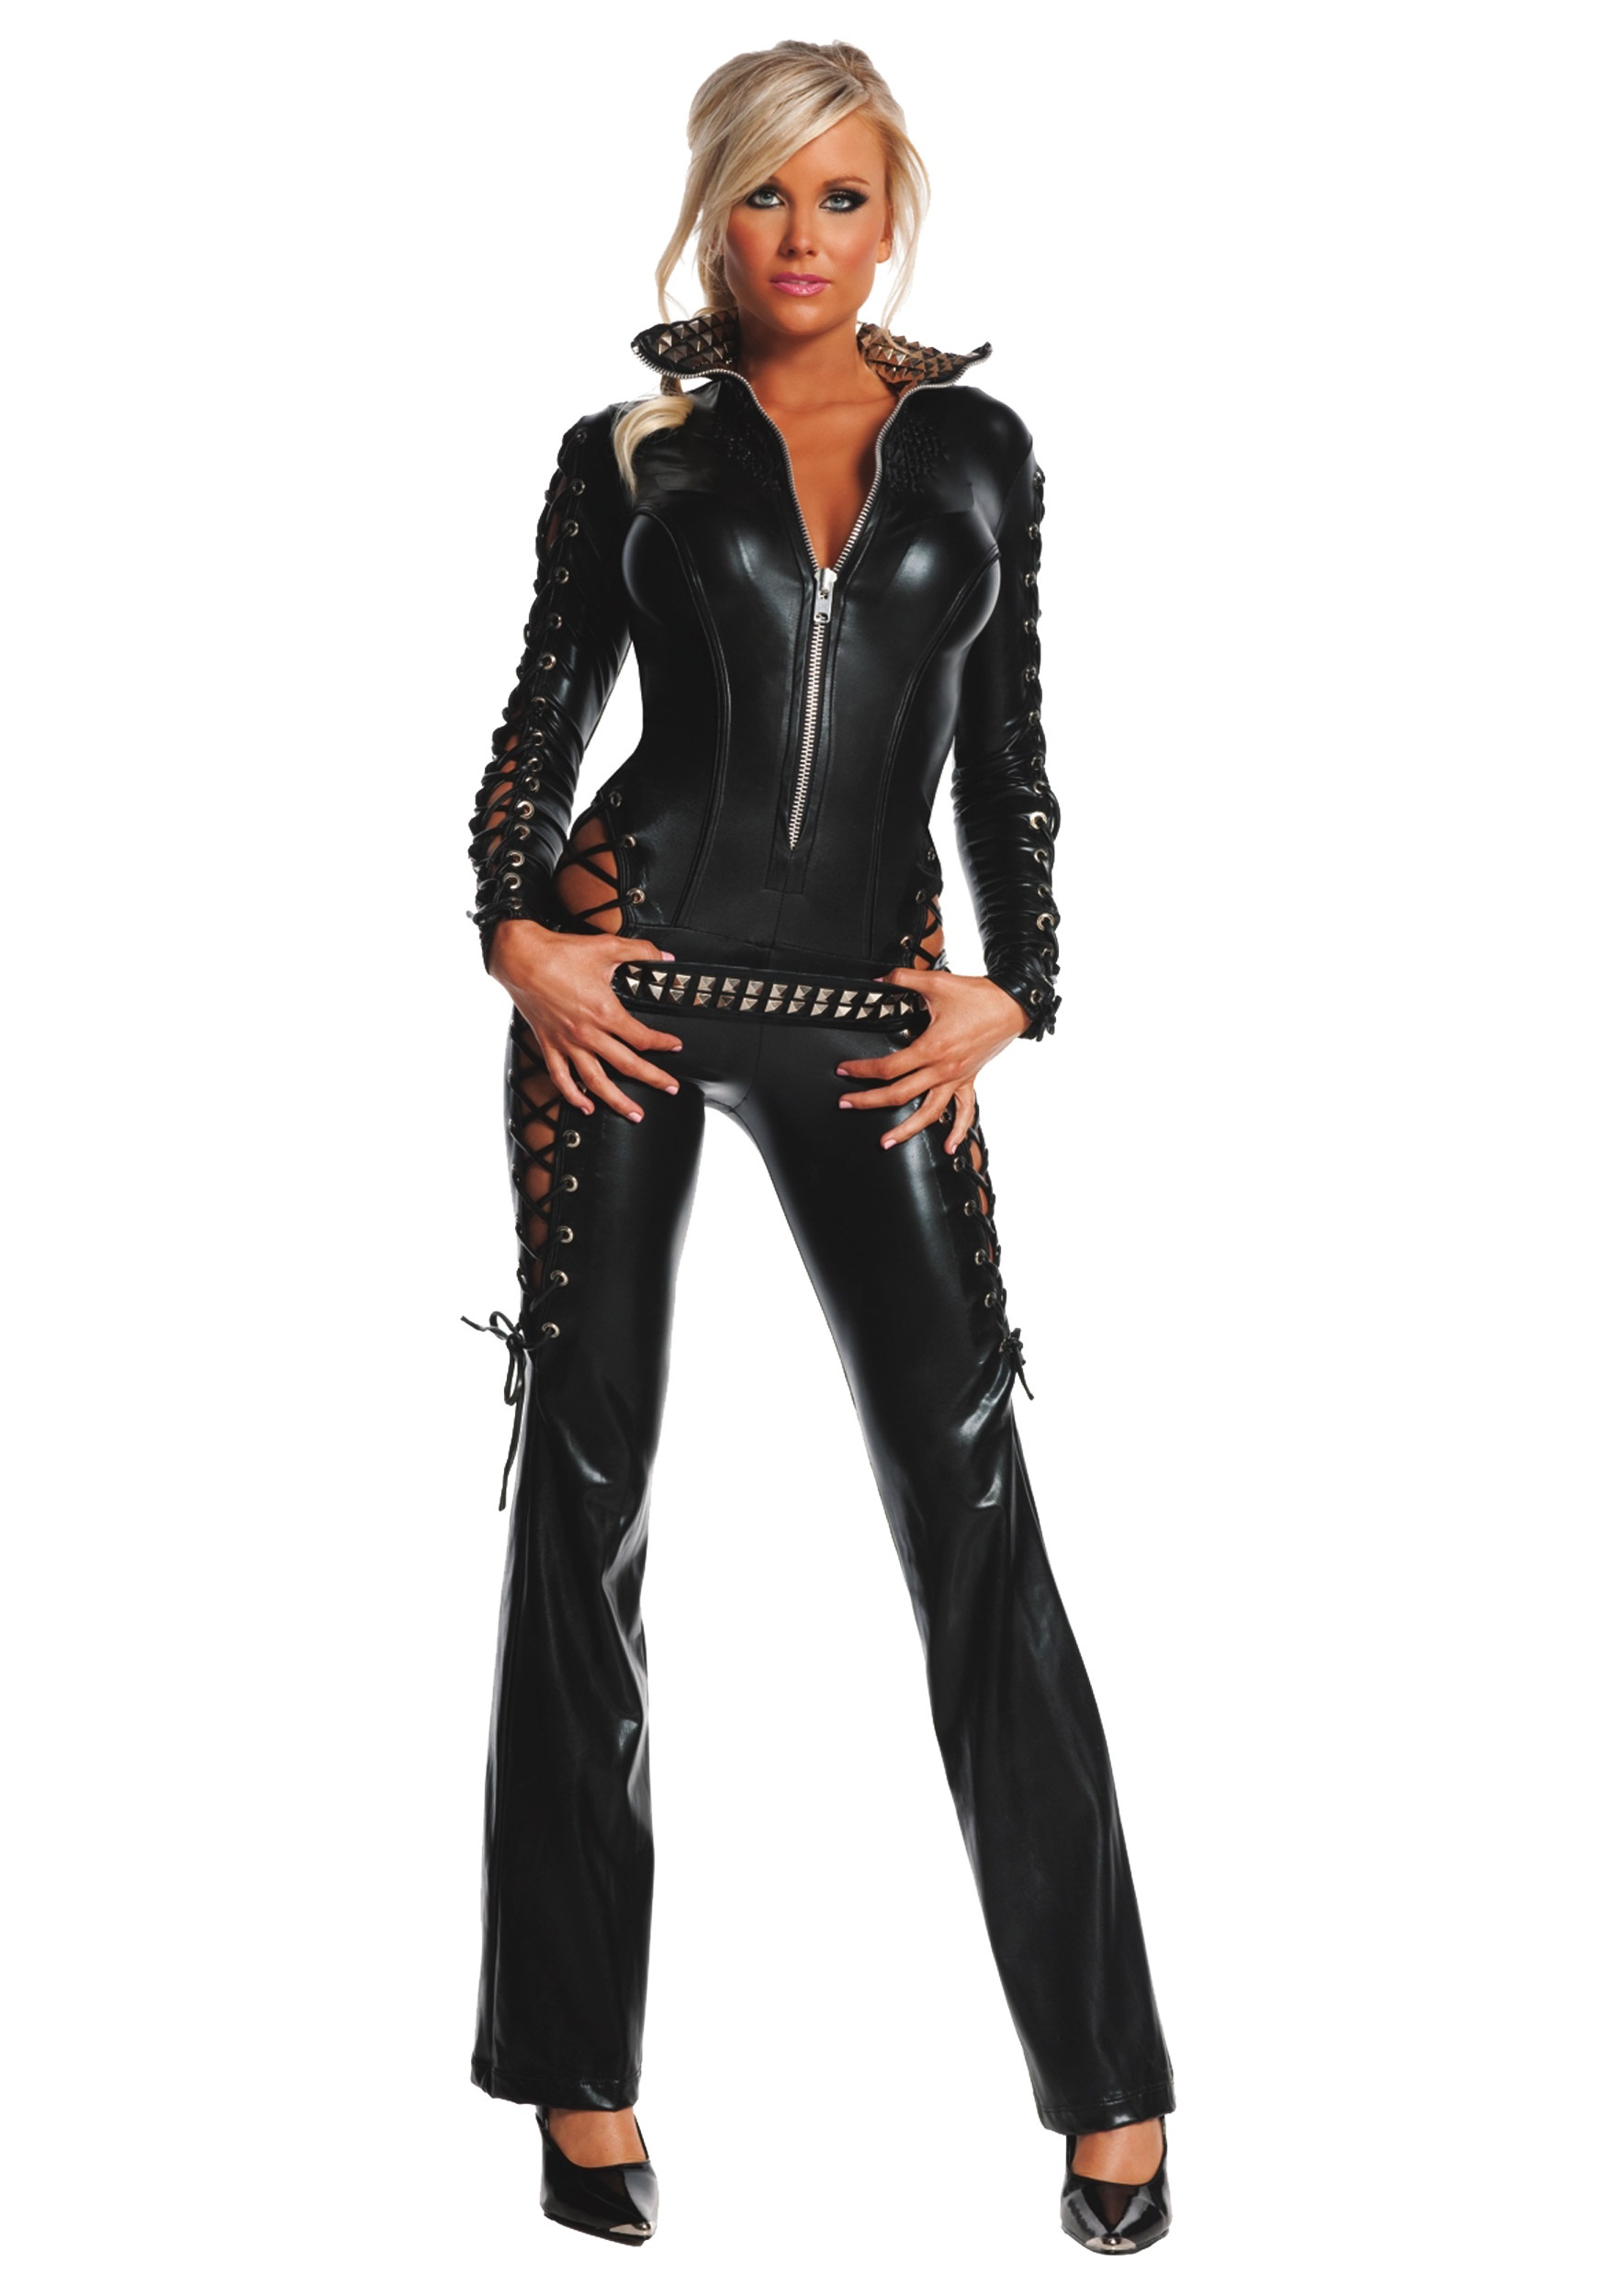 Women's Biker Outfits womens rebel costume KKHMNQJ